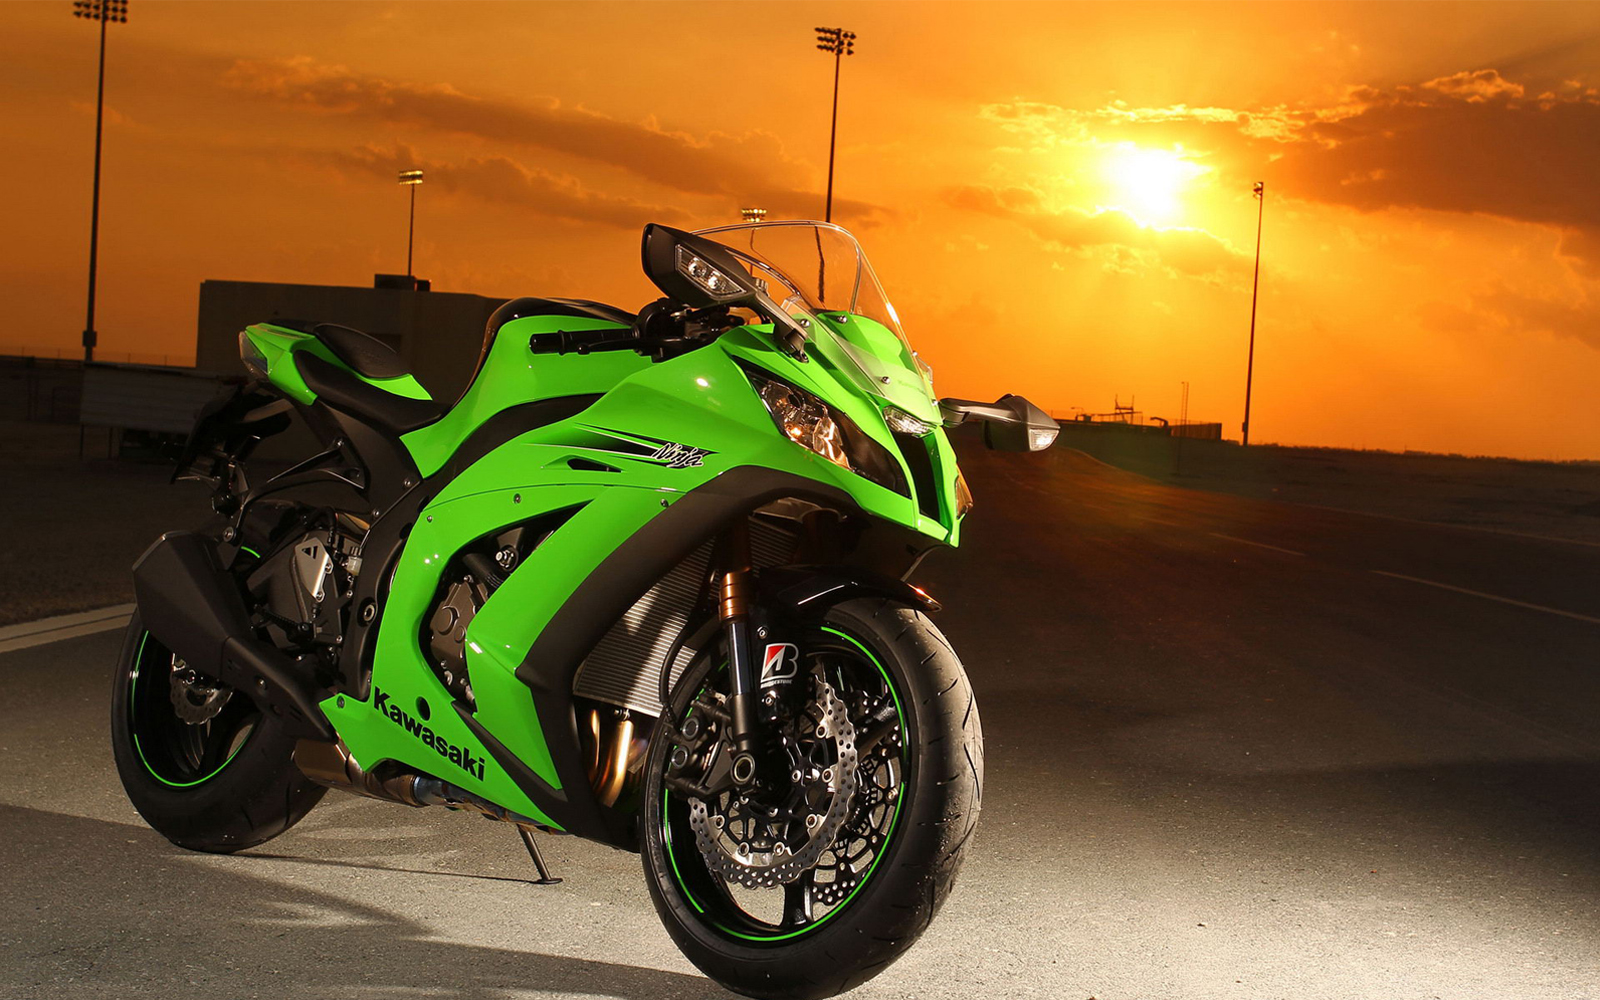 Kawasaki Ninja ZX10R Hdwallpaeprs Wallpapers